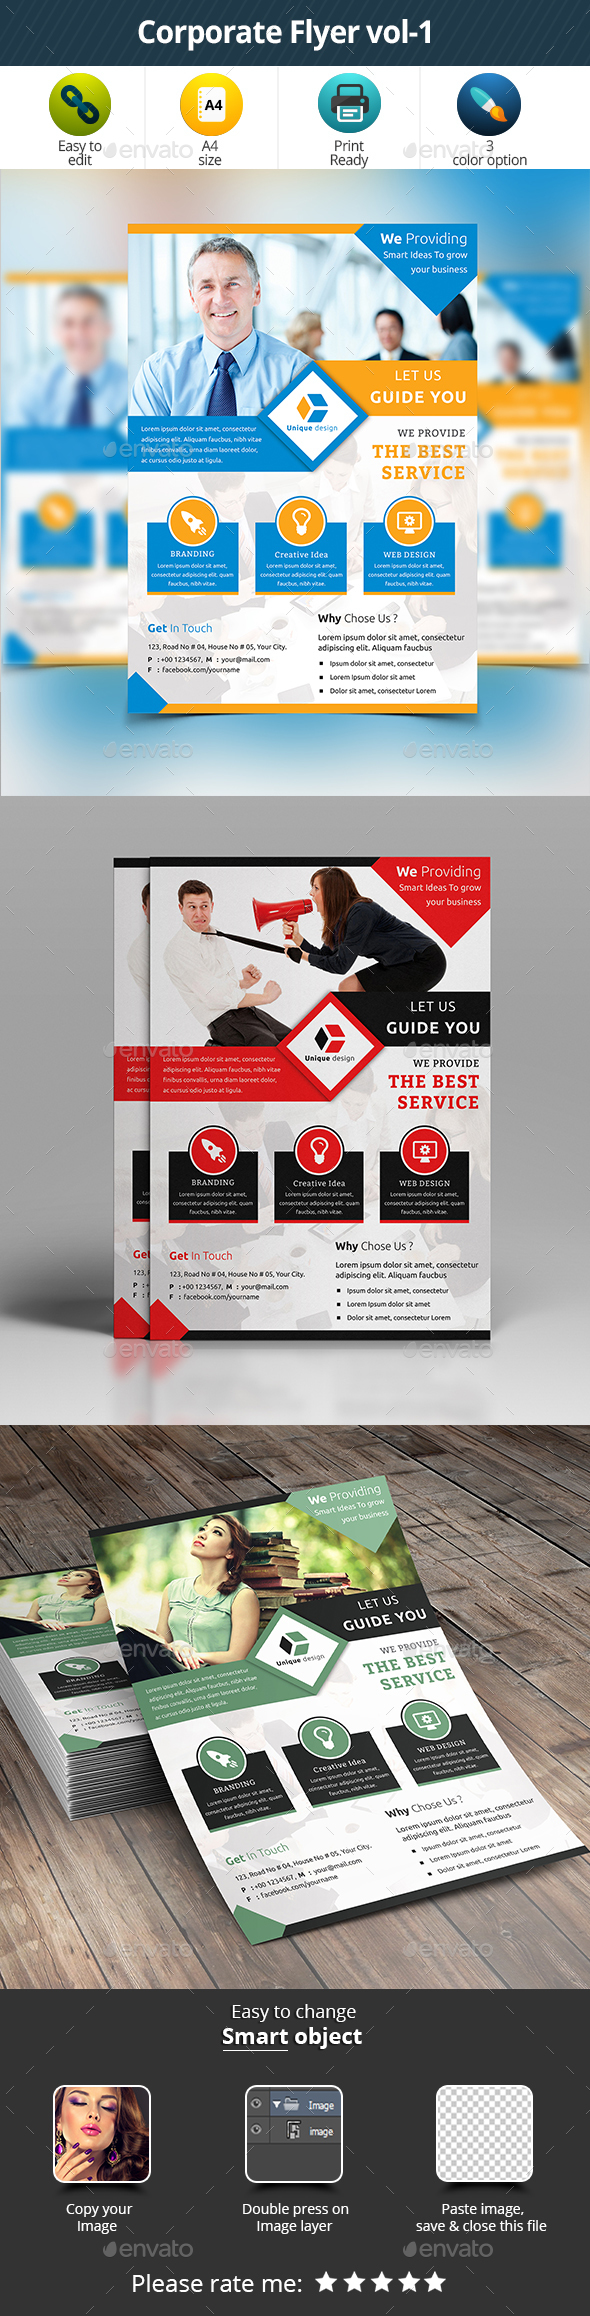 Corporate Flyer Vol- 1 - Corporate Business Cards